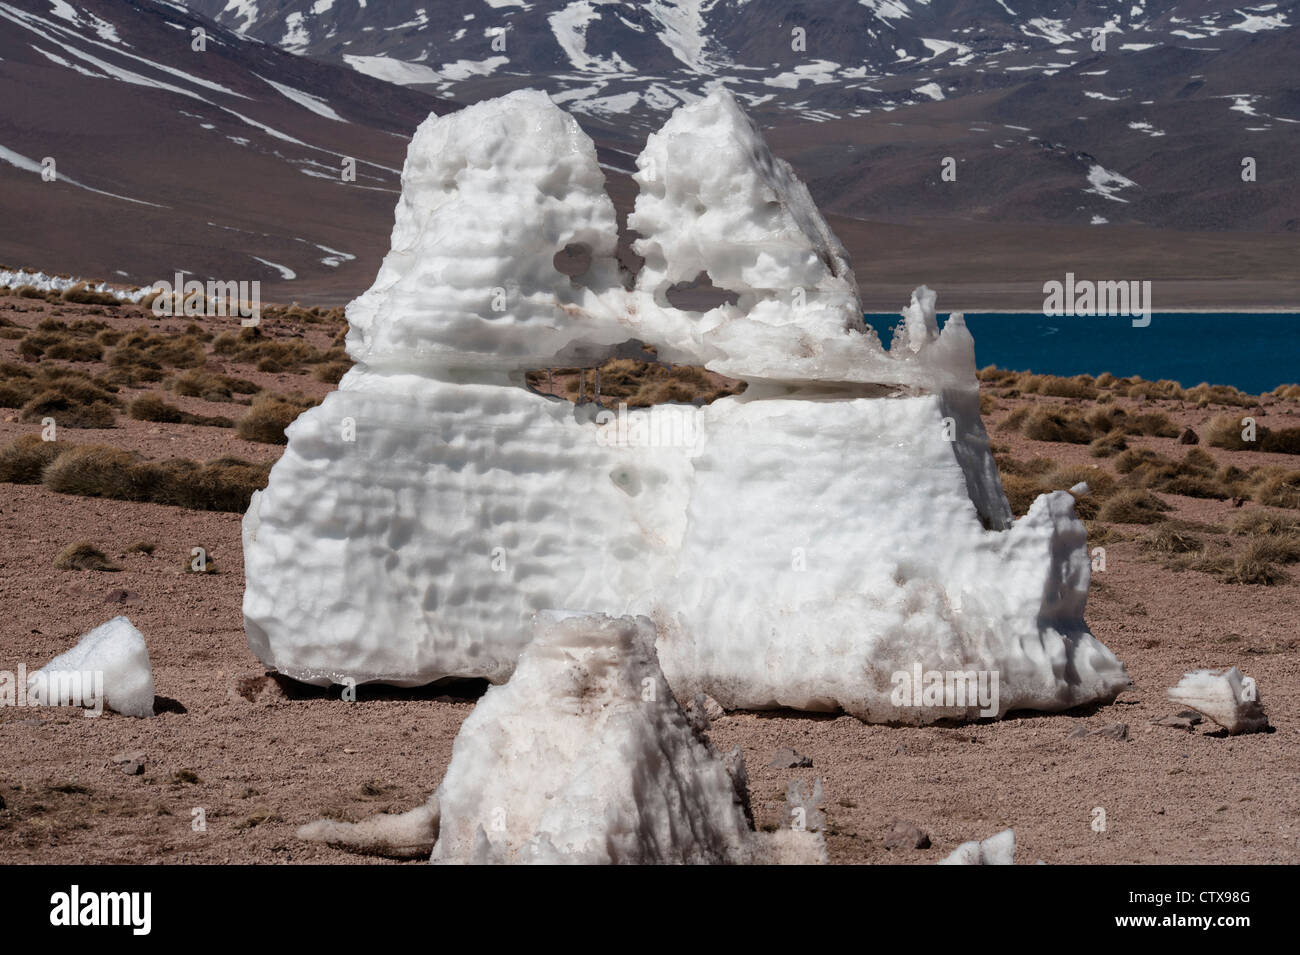 Snow sculptured by wind front of Laguna Miscanti Reserva National Los Flamencos Atacama Andes North Chile October - Stock Image